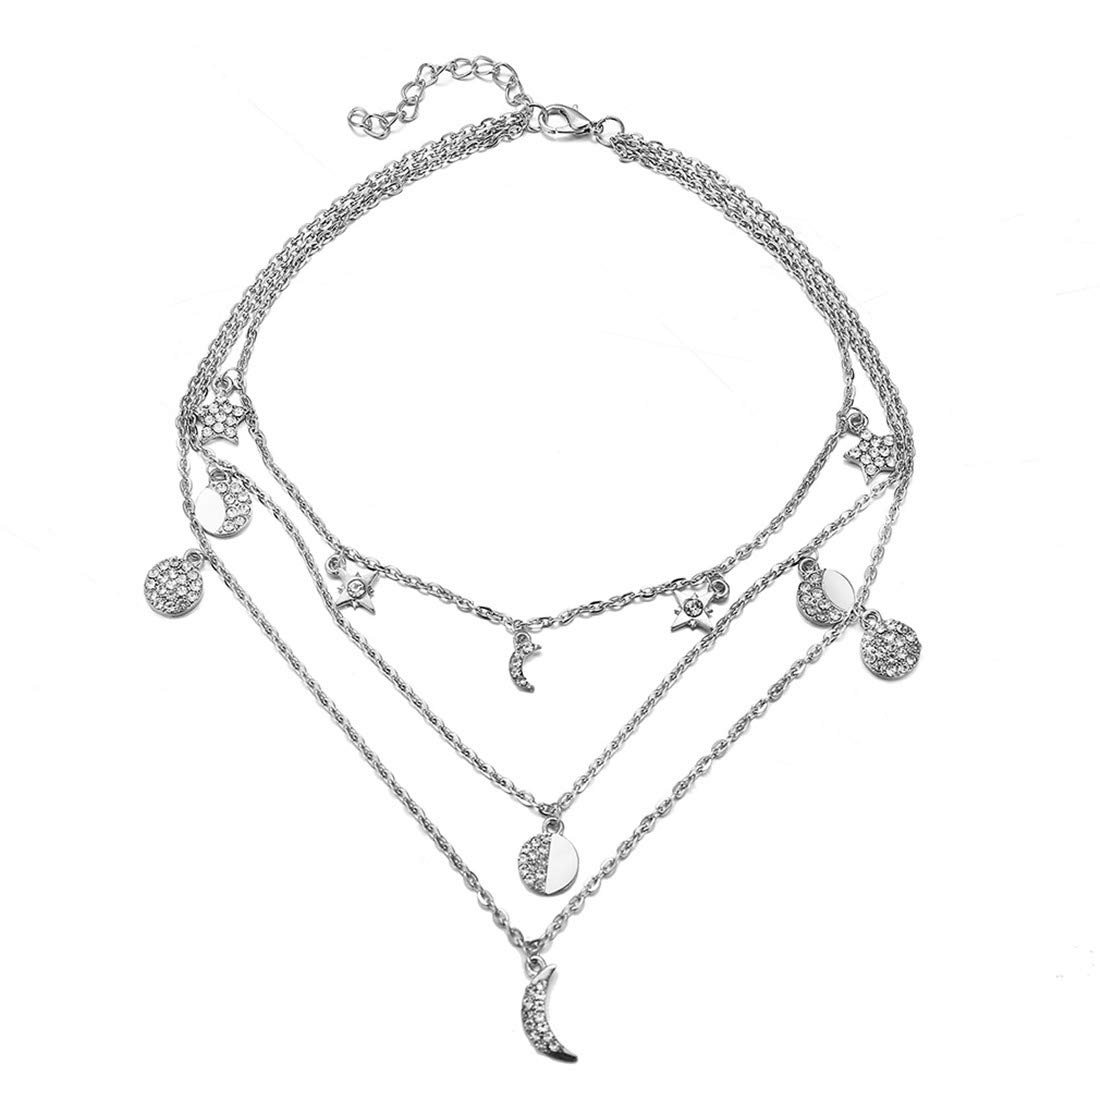 VWH Women Girl Multi Layer Choker Necklace Long Chain Pendant Necklace Sweater Necklace(Silver)